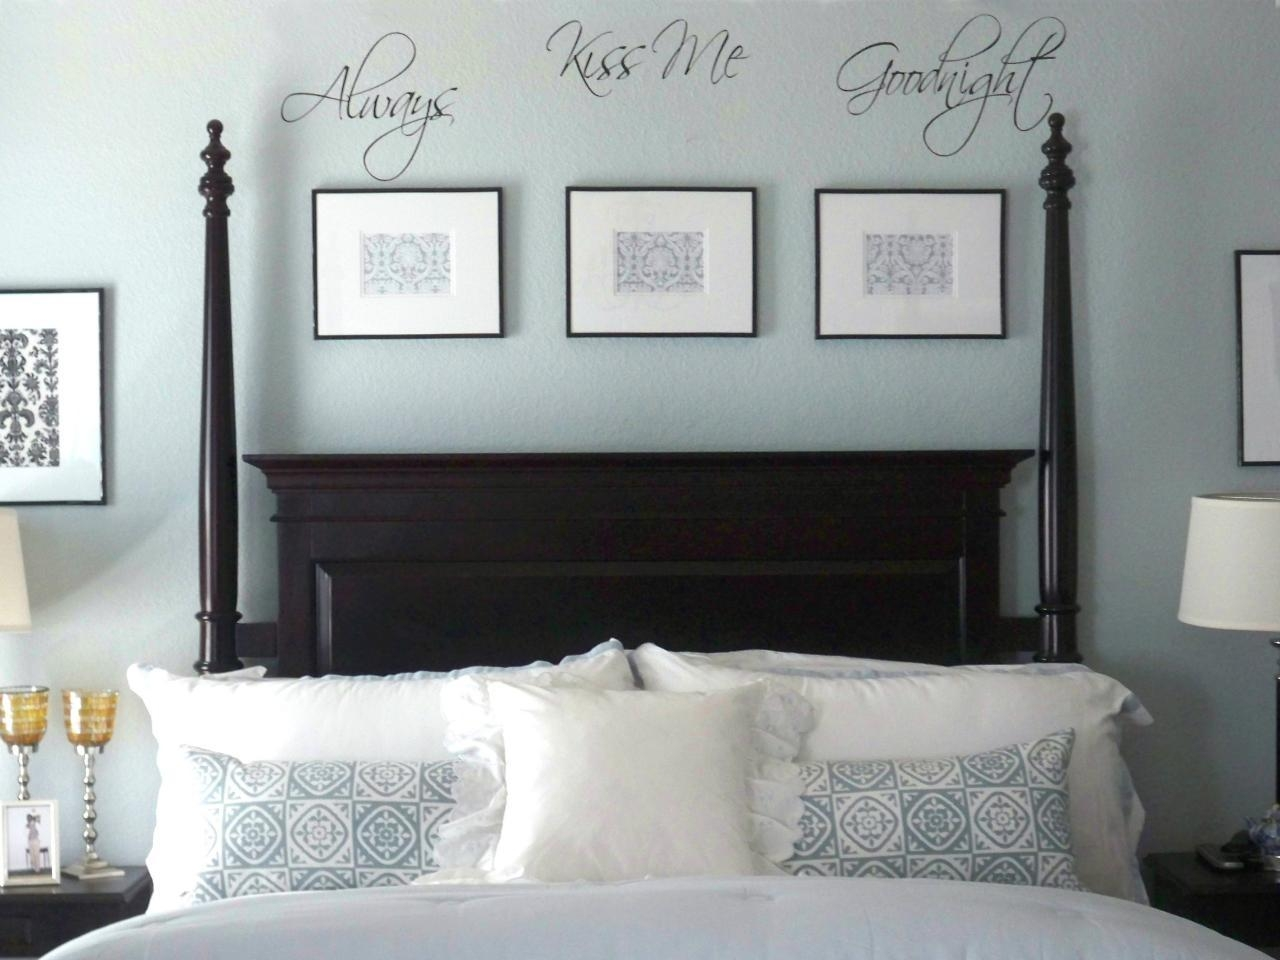 10 Ideas For Decorating Over The Bed Popsugar Home. Tags Above The within Over The Bed Wall Art